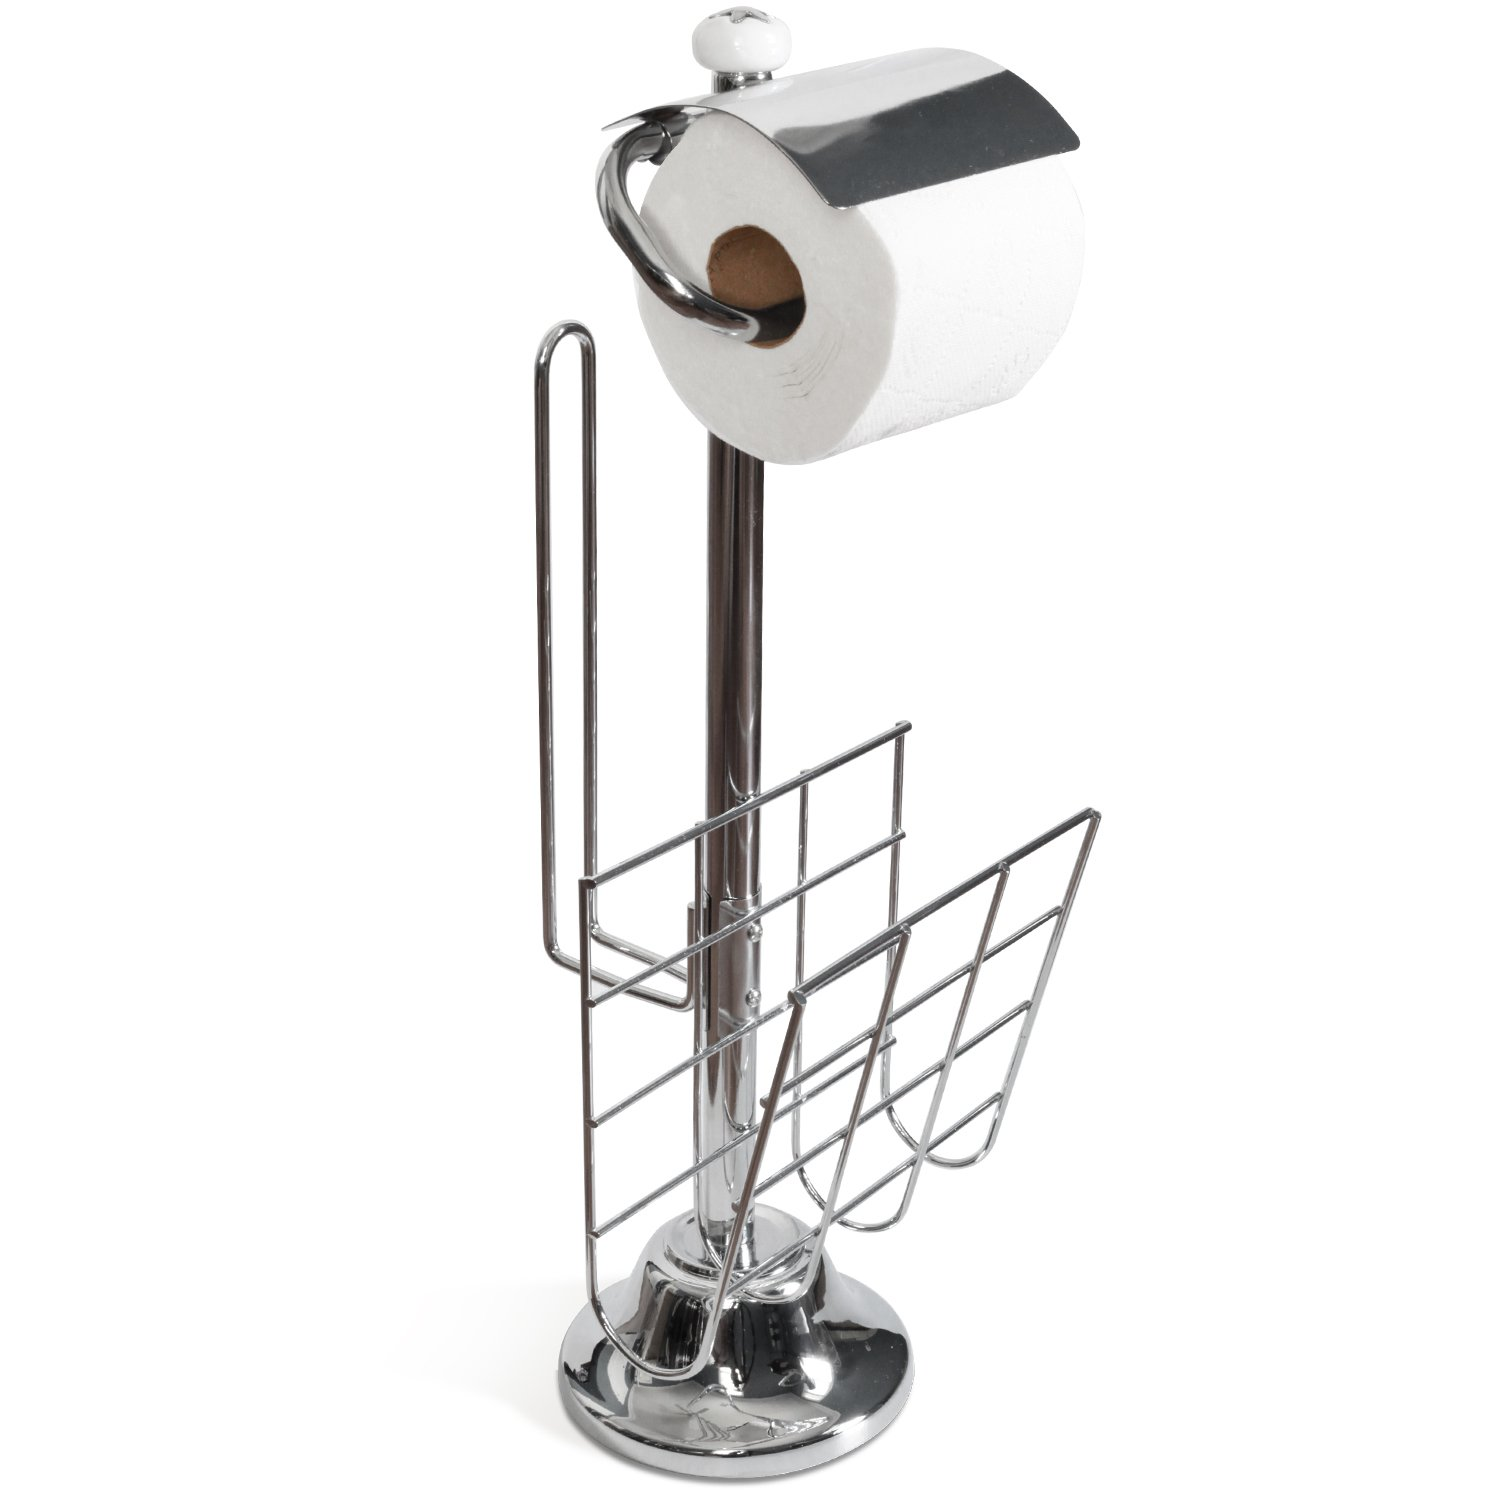 Metal Toilet Paper Stand Part - 41: Amazon.com: Toilet Paper Caddy Tissue Dispenser And Stand With Magazine  Rack.: Home U0026 Kitchen